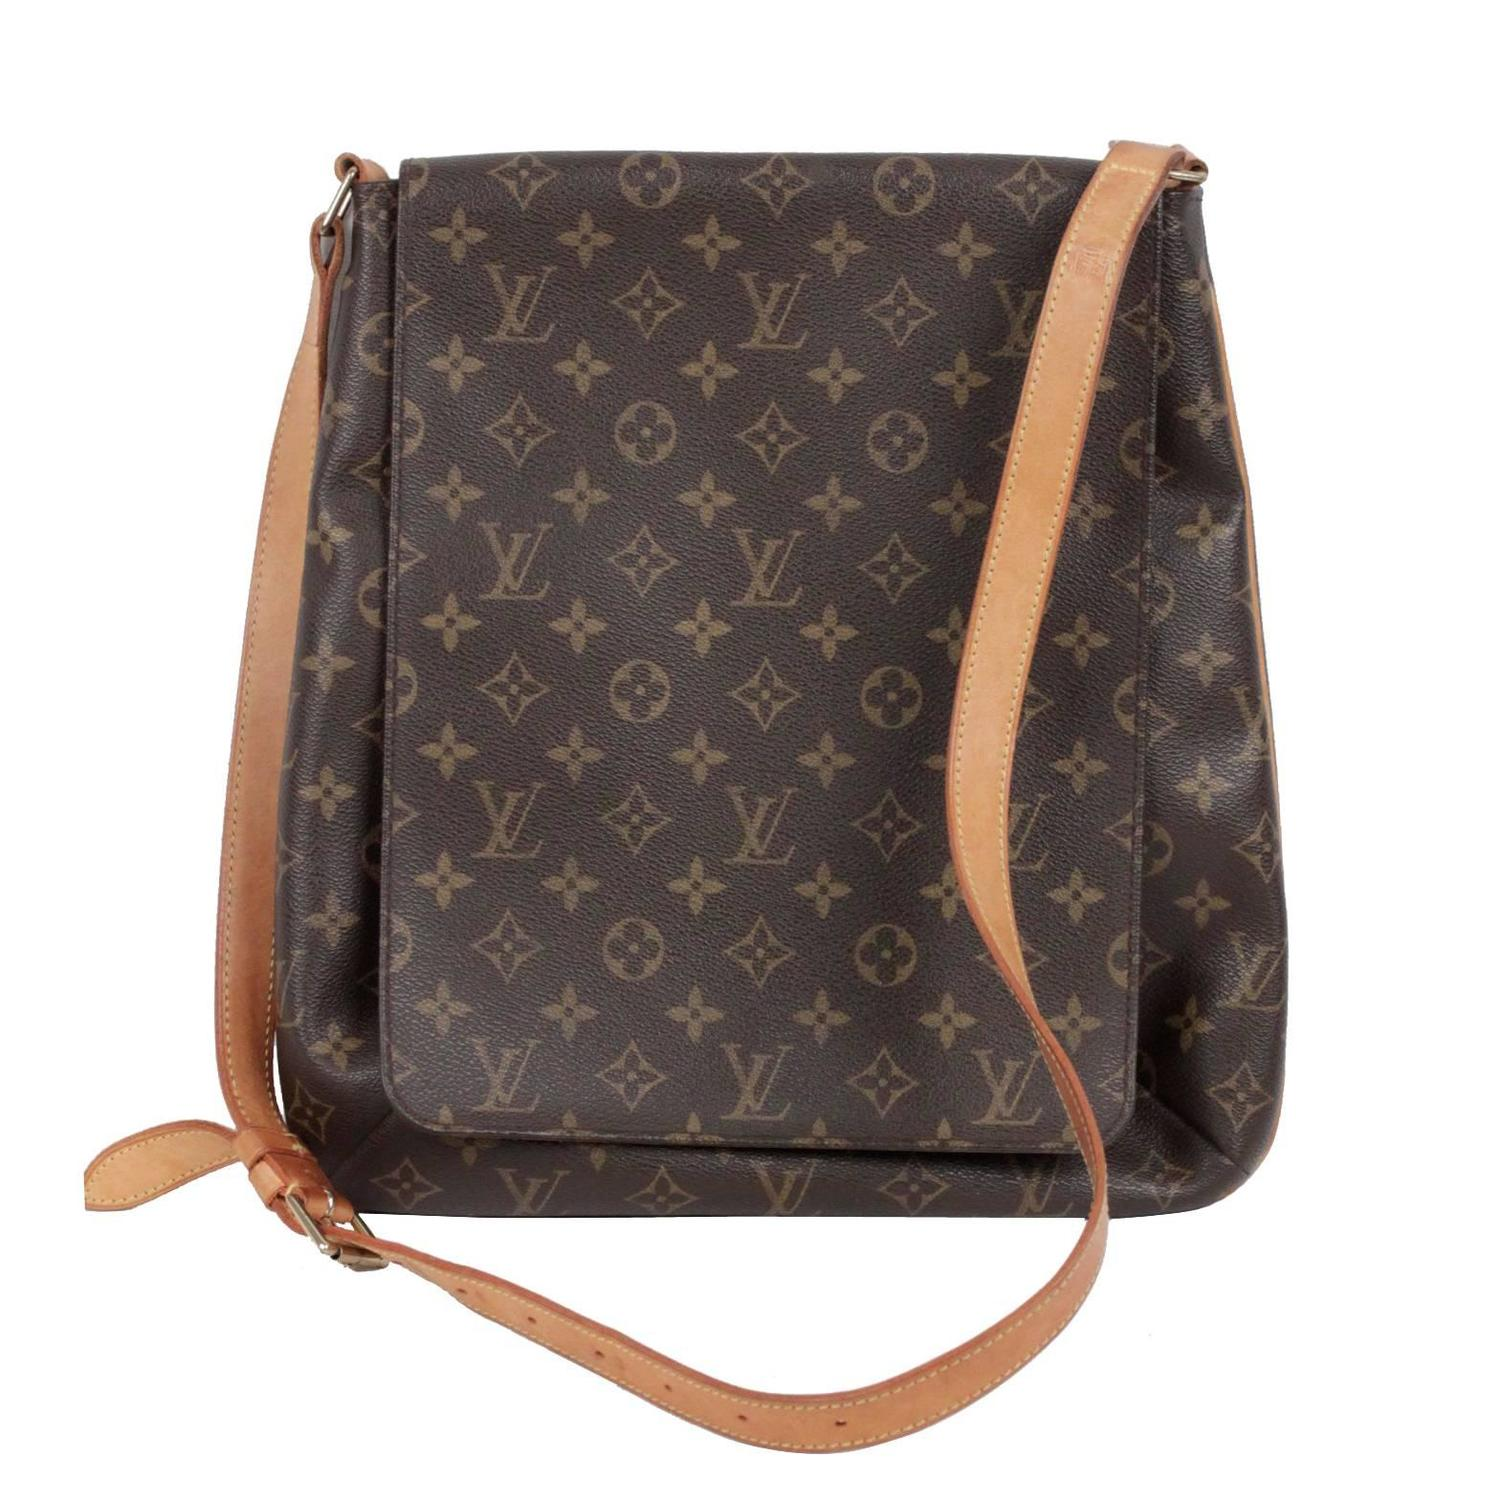 Louis Vuitton Satchel Bag In Brown Monogram Canvas jGRl2Xbu